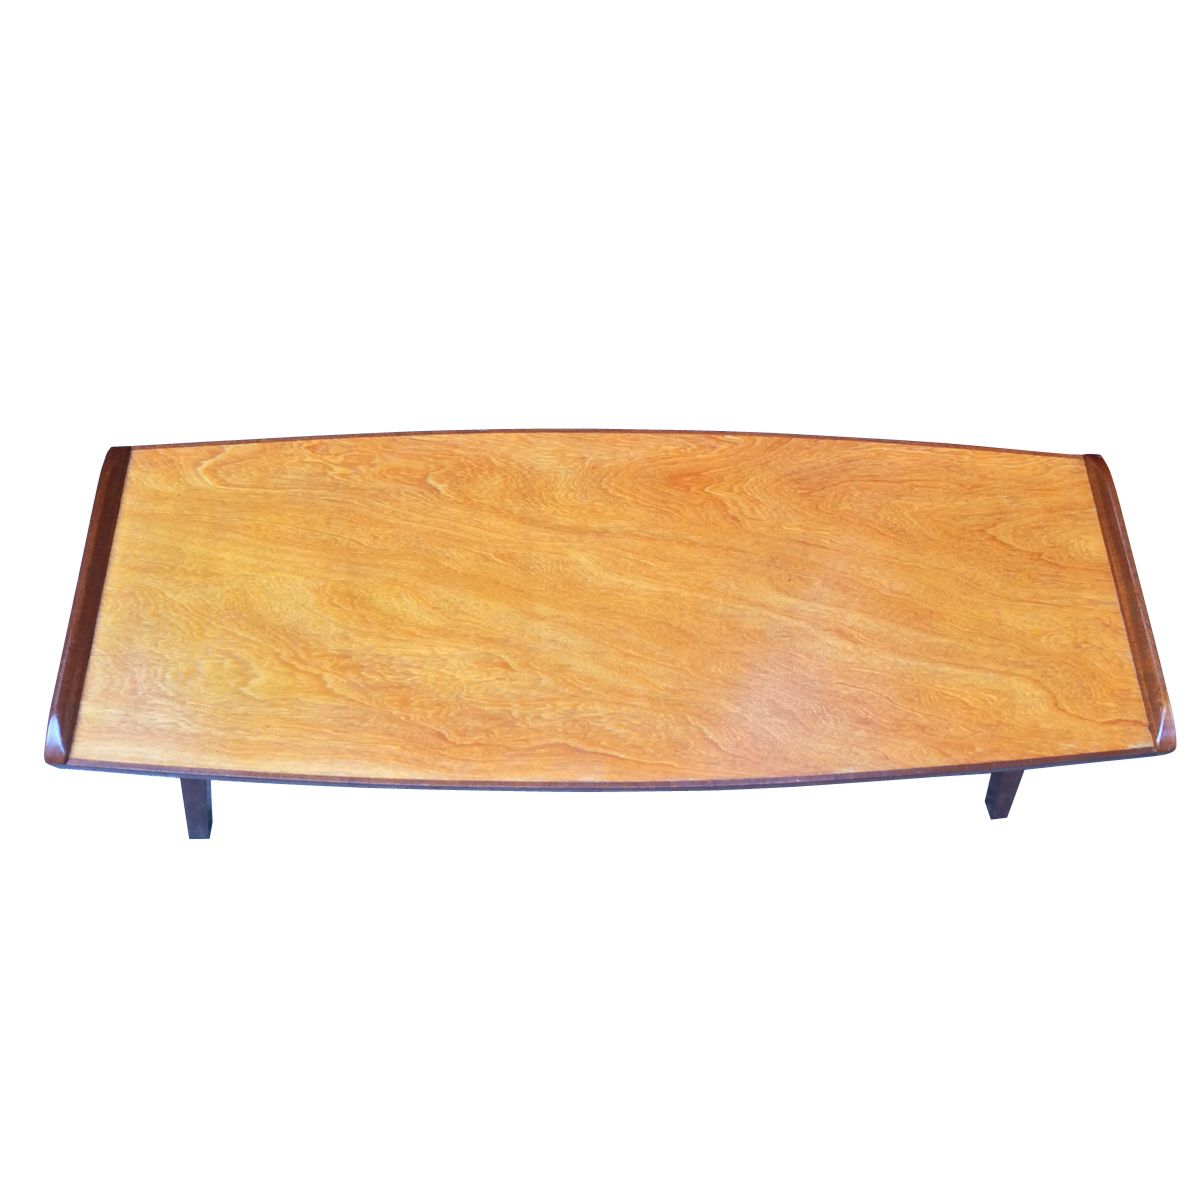 English mid century teak coffee table 1960s for sale at for Teak coffee table